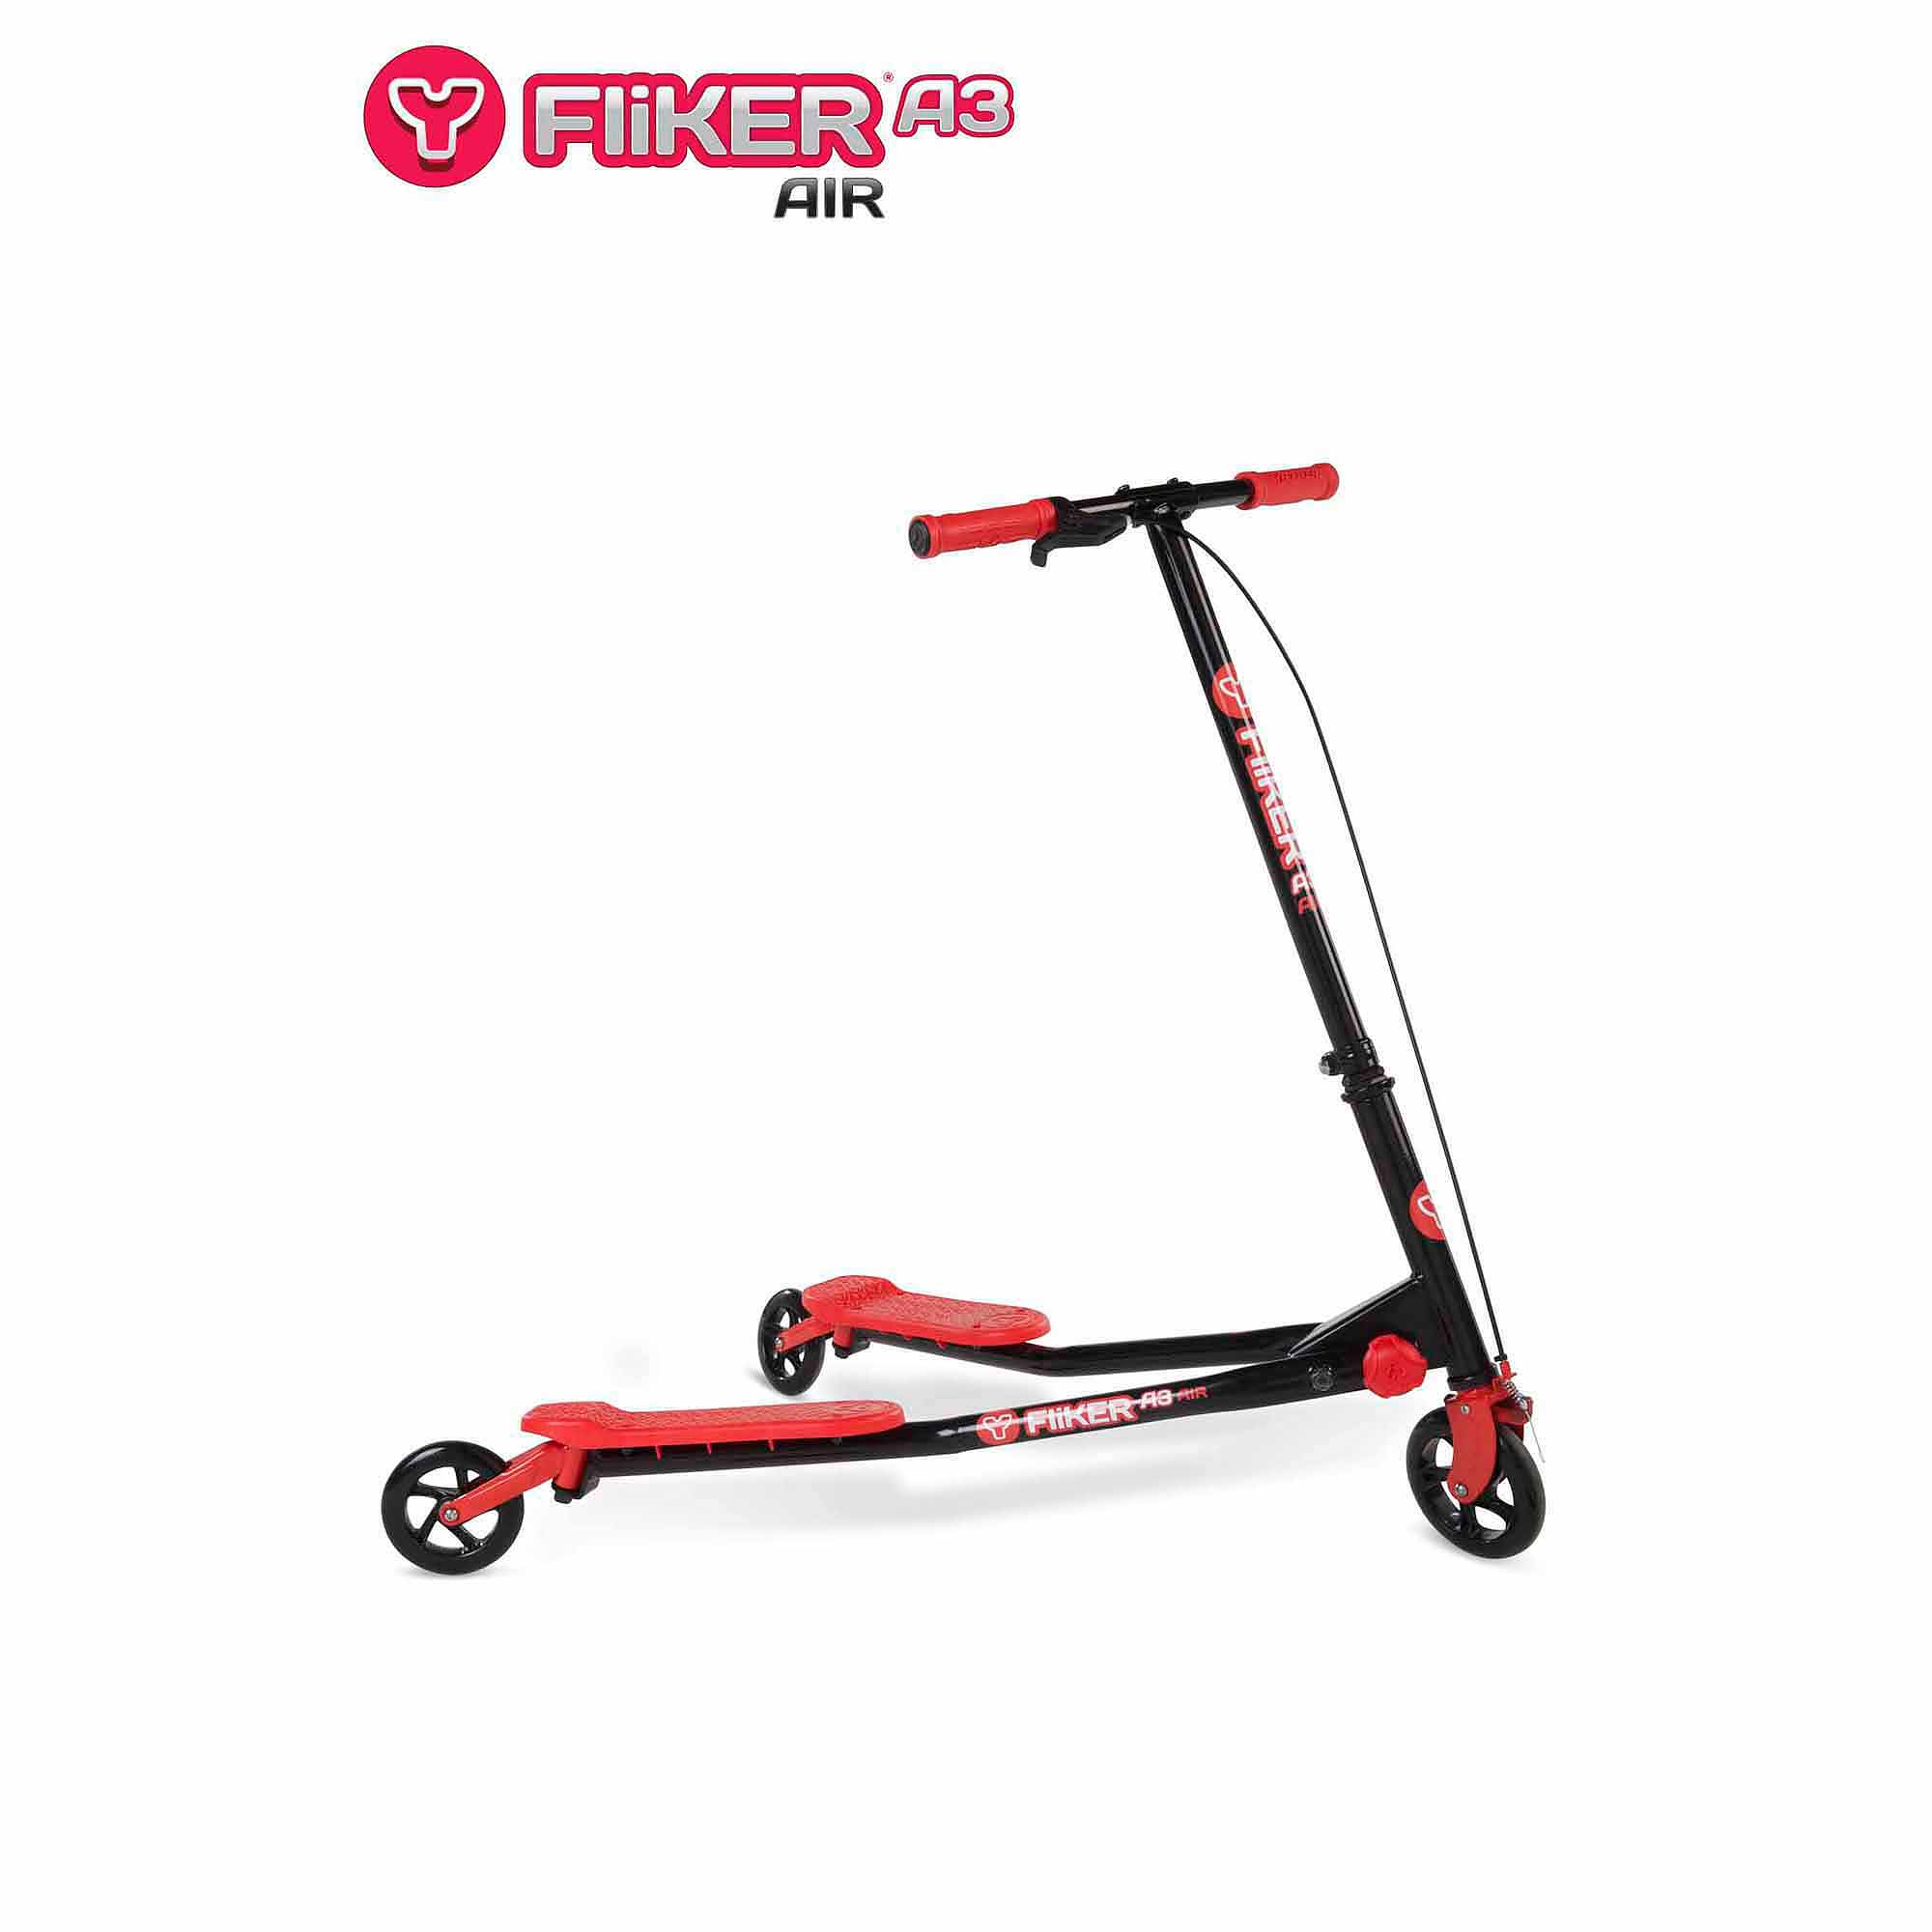 Yvolution Y Fliker A3 Air Scooter Black Red Walmart Com